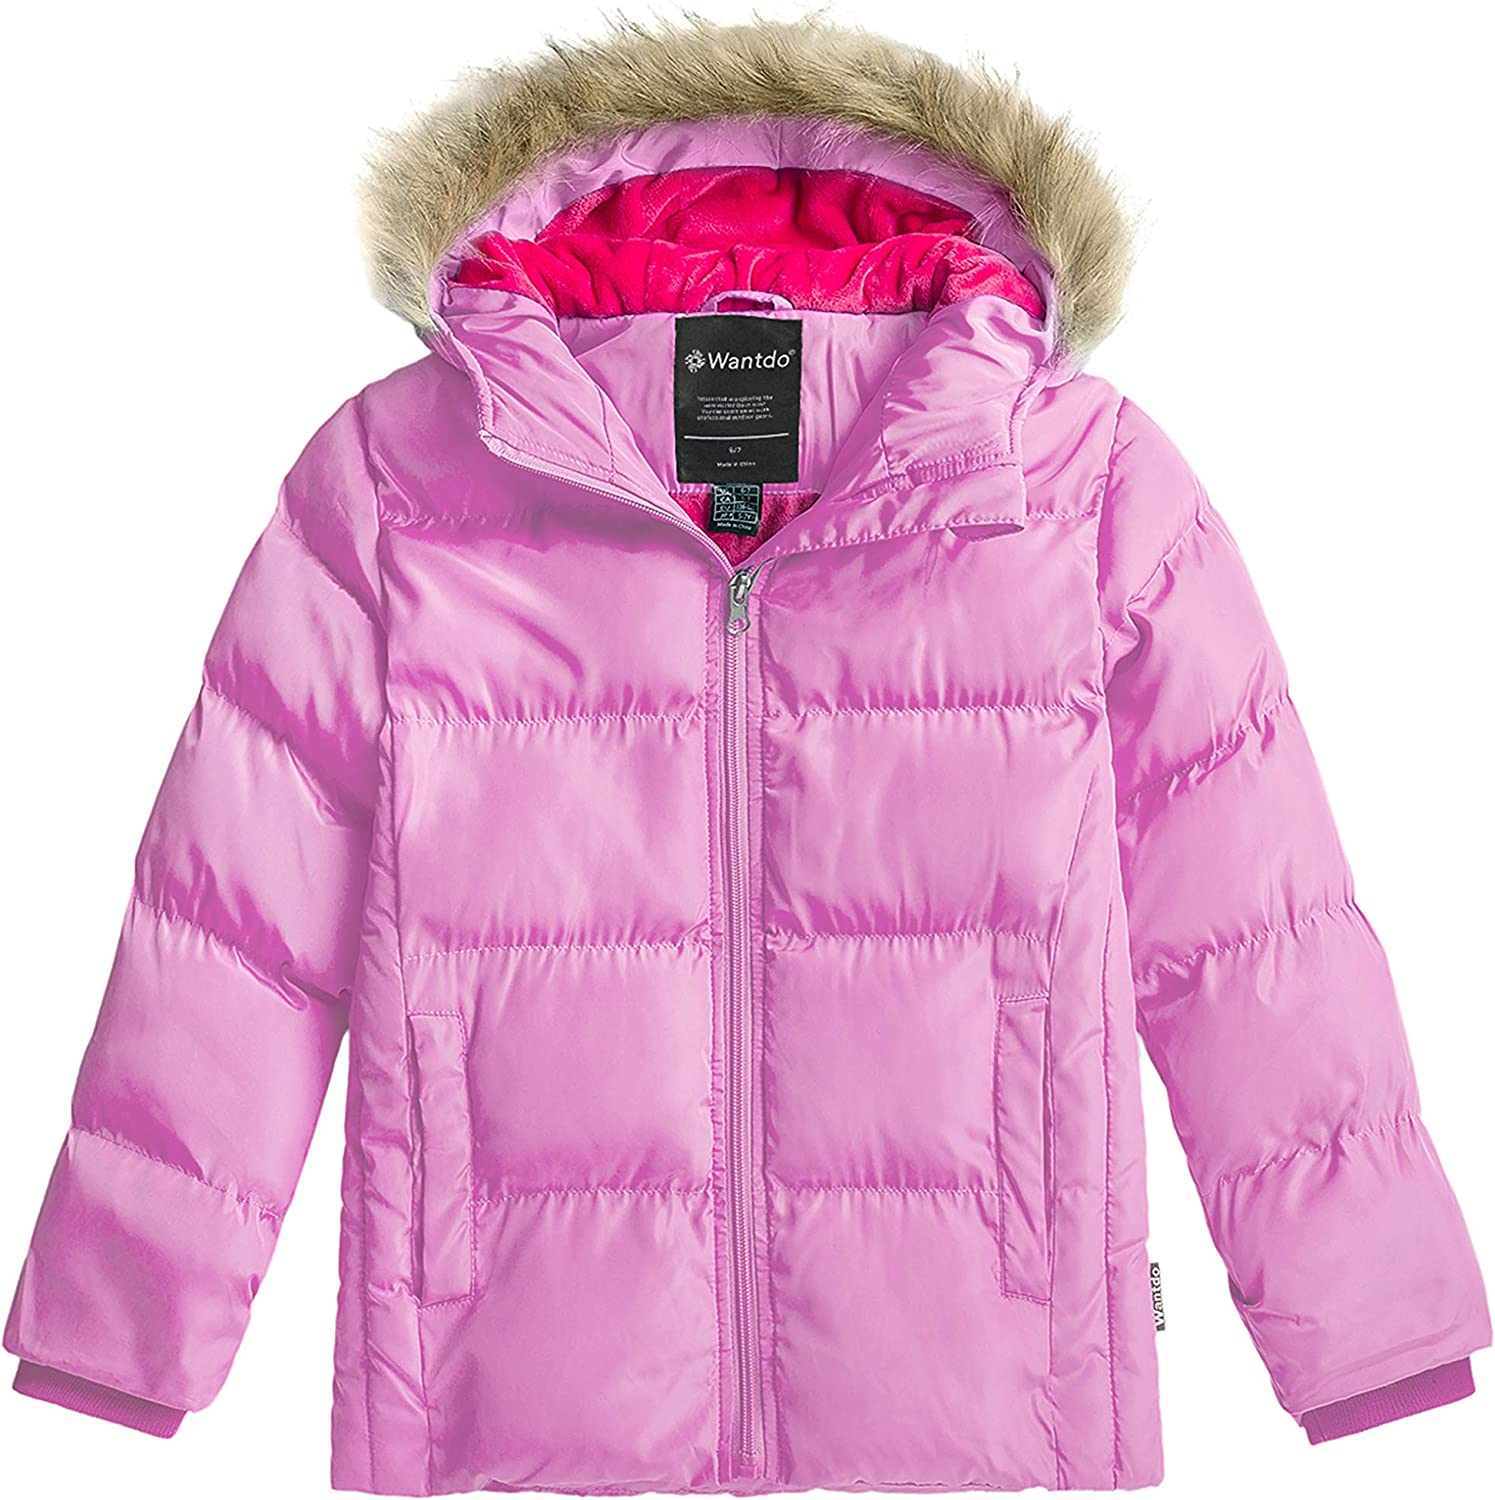 Wantdo Girl's Water-Resistant Winter Coat Warm Insulated Padded Puffer Jacket with Hood: Clothing